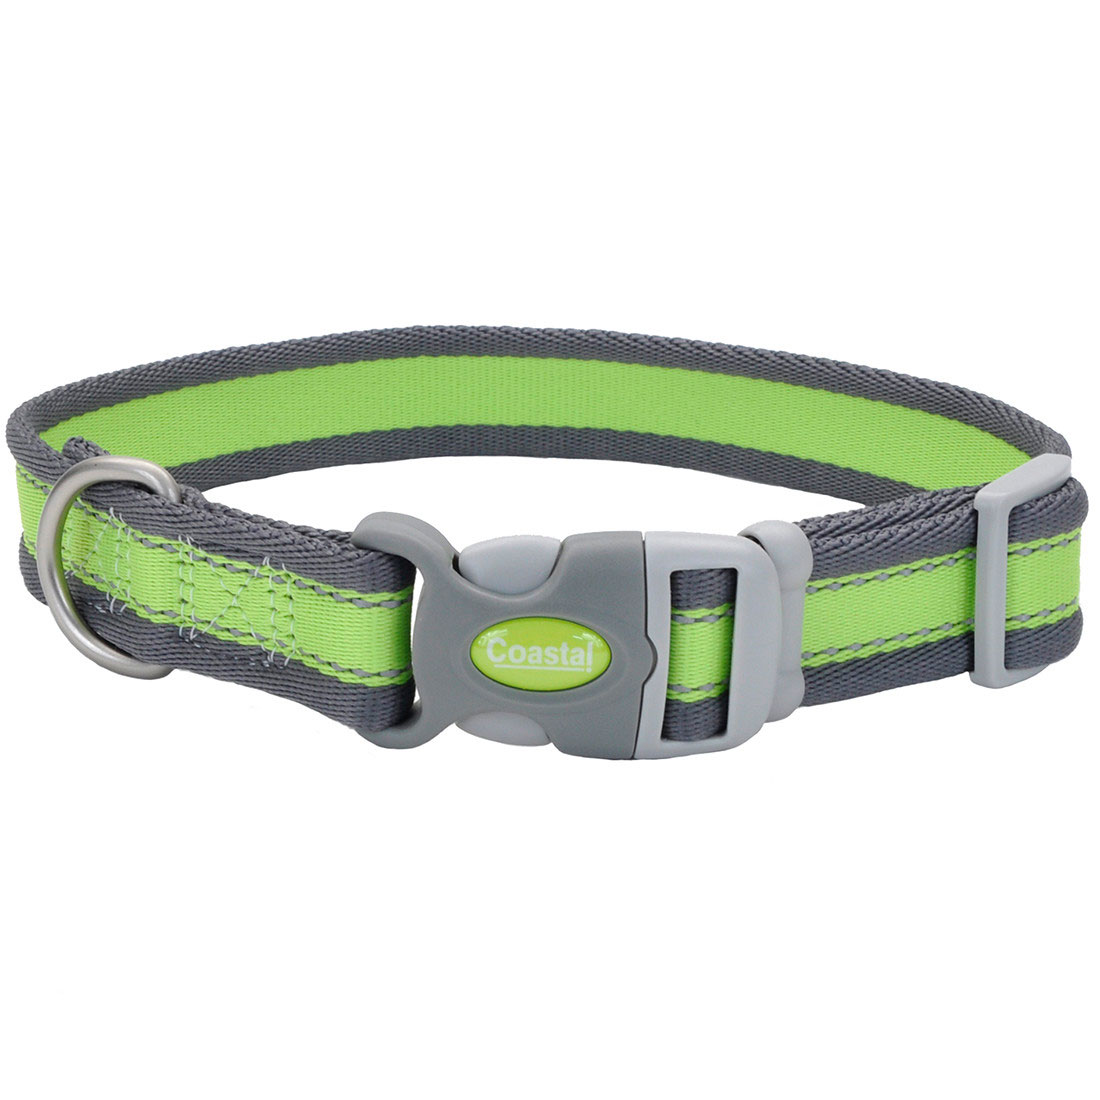 Pro Reflective Adjustable Dog Collar, Bright Green with Grey Image